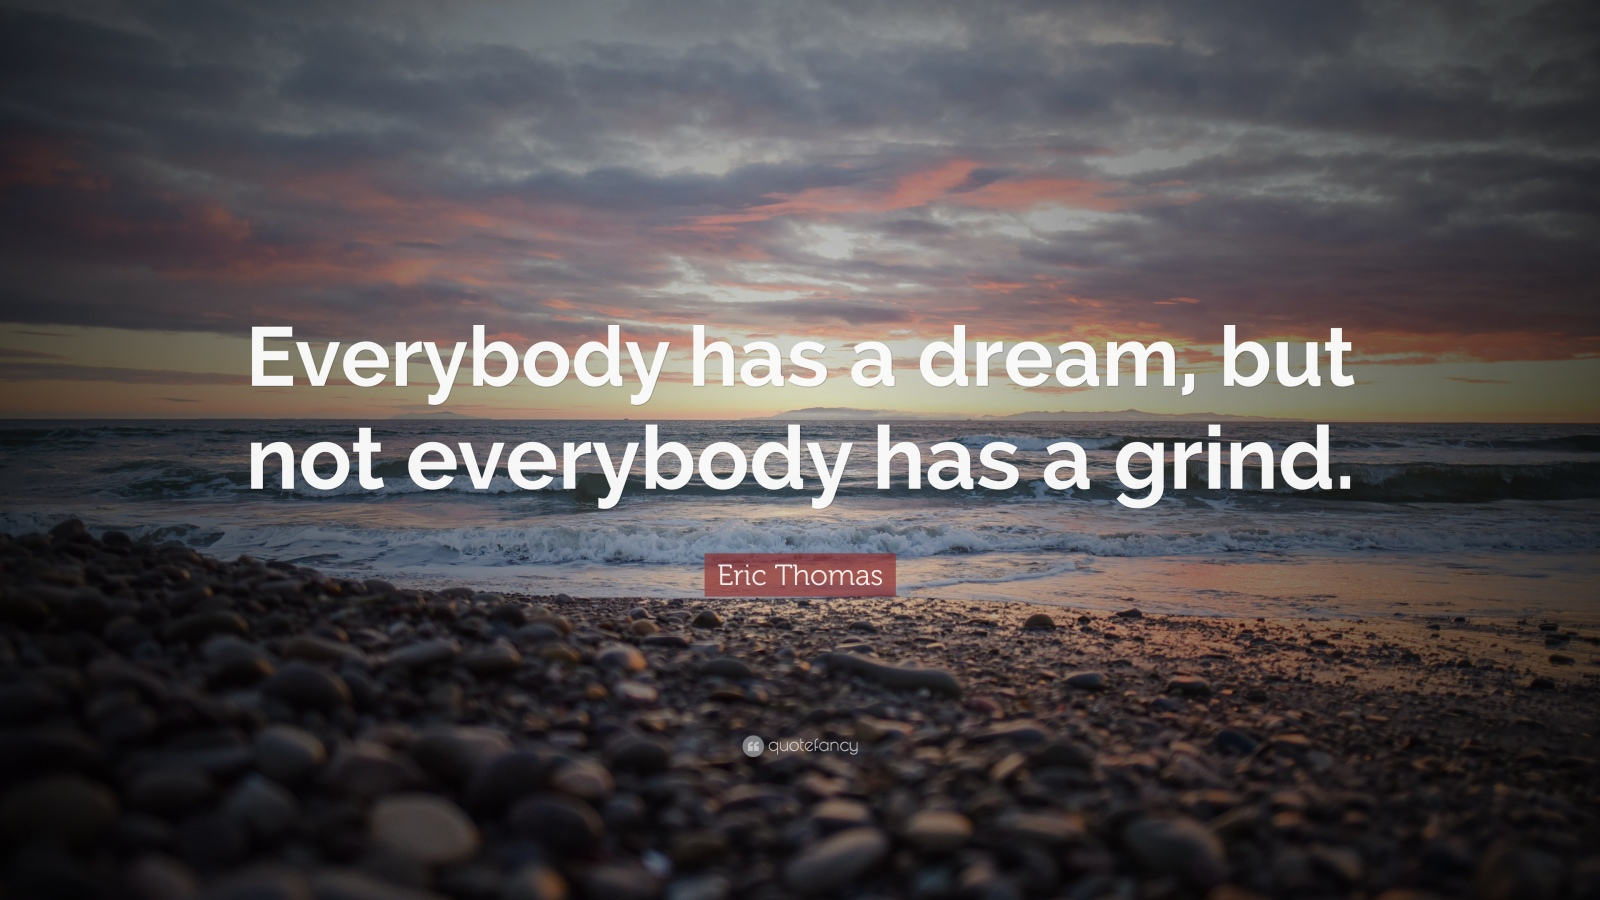 download eric thomas quotes wallpaper gallery